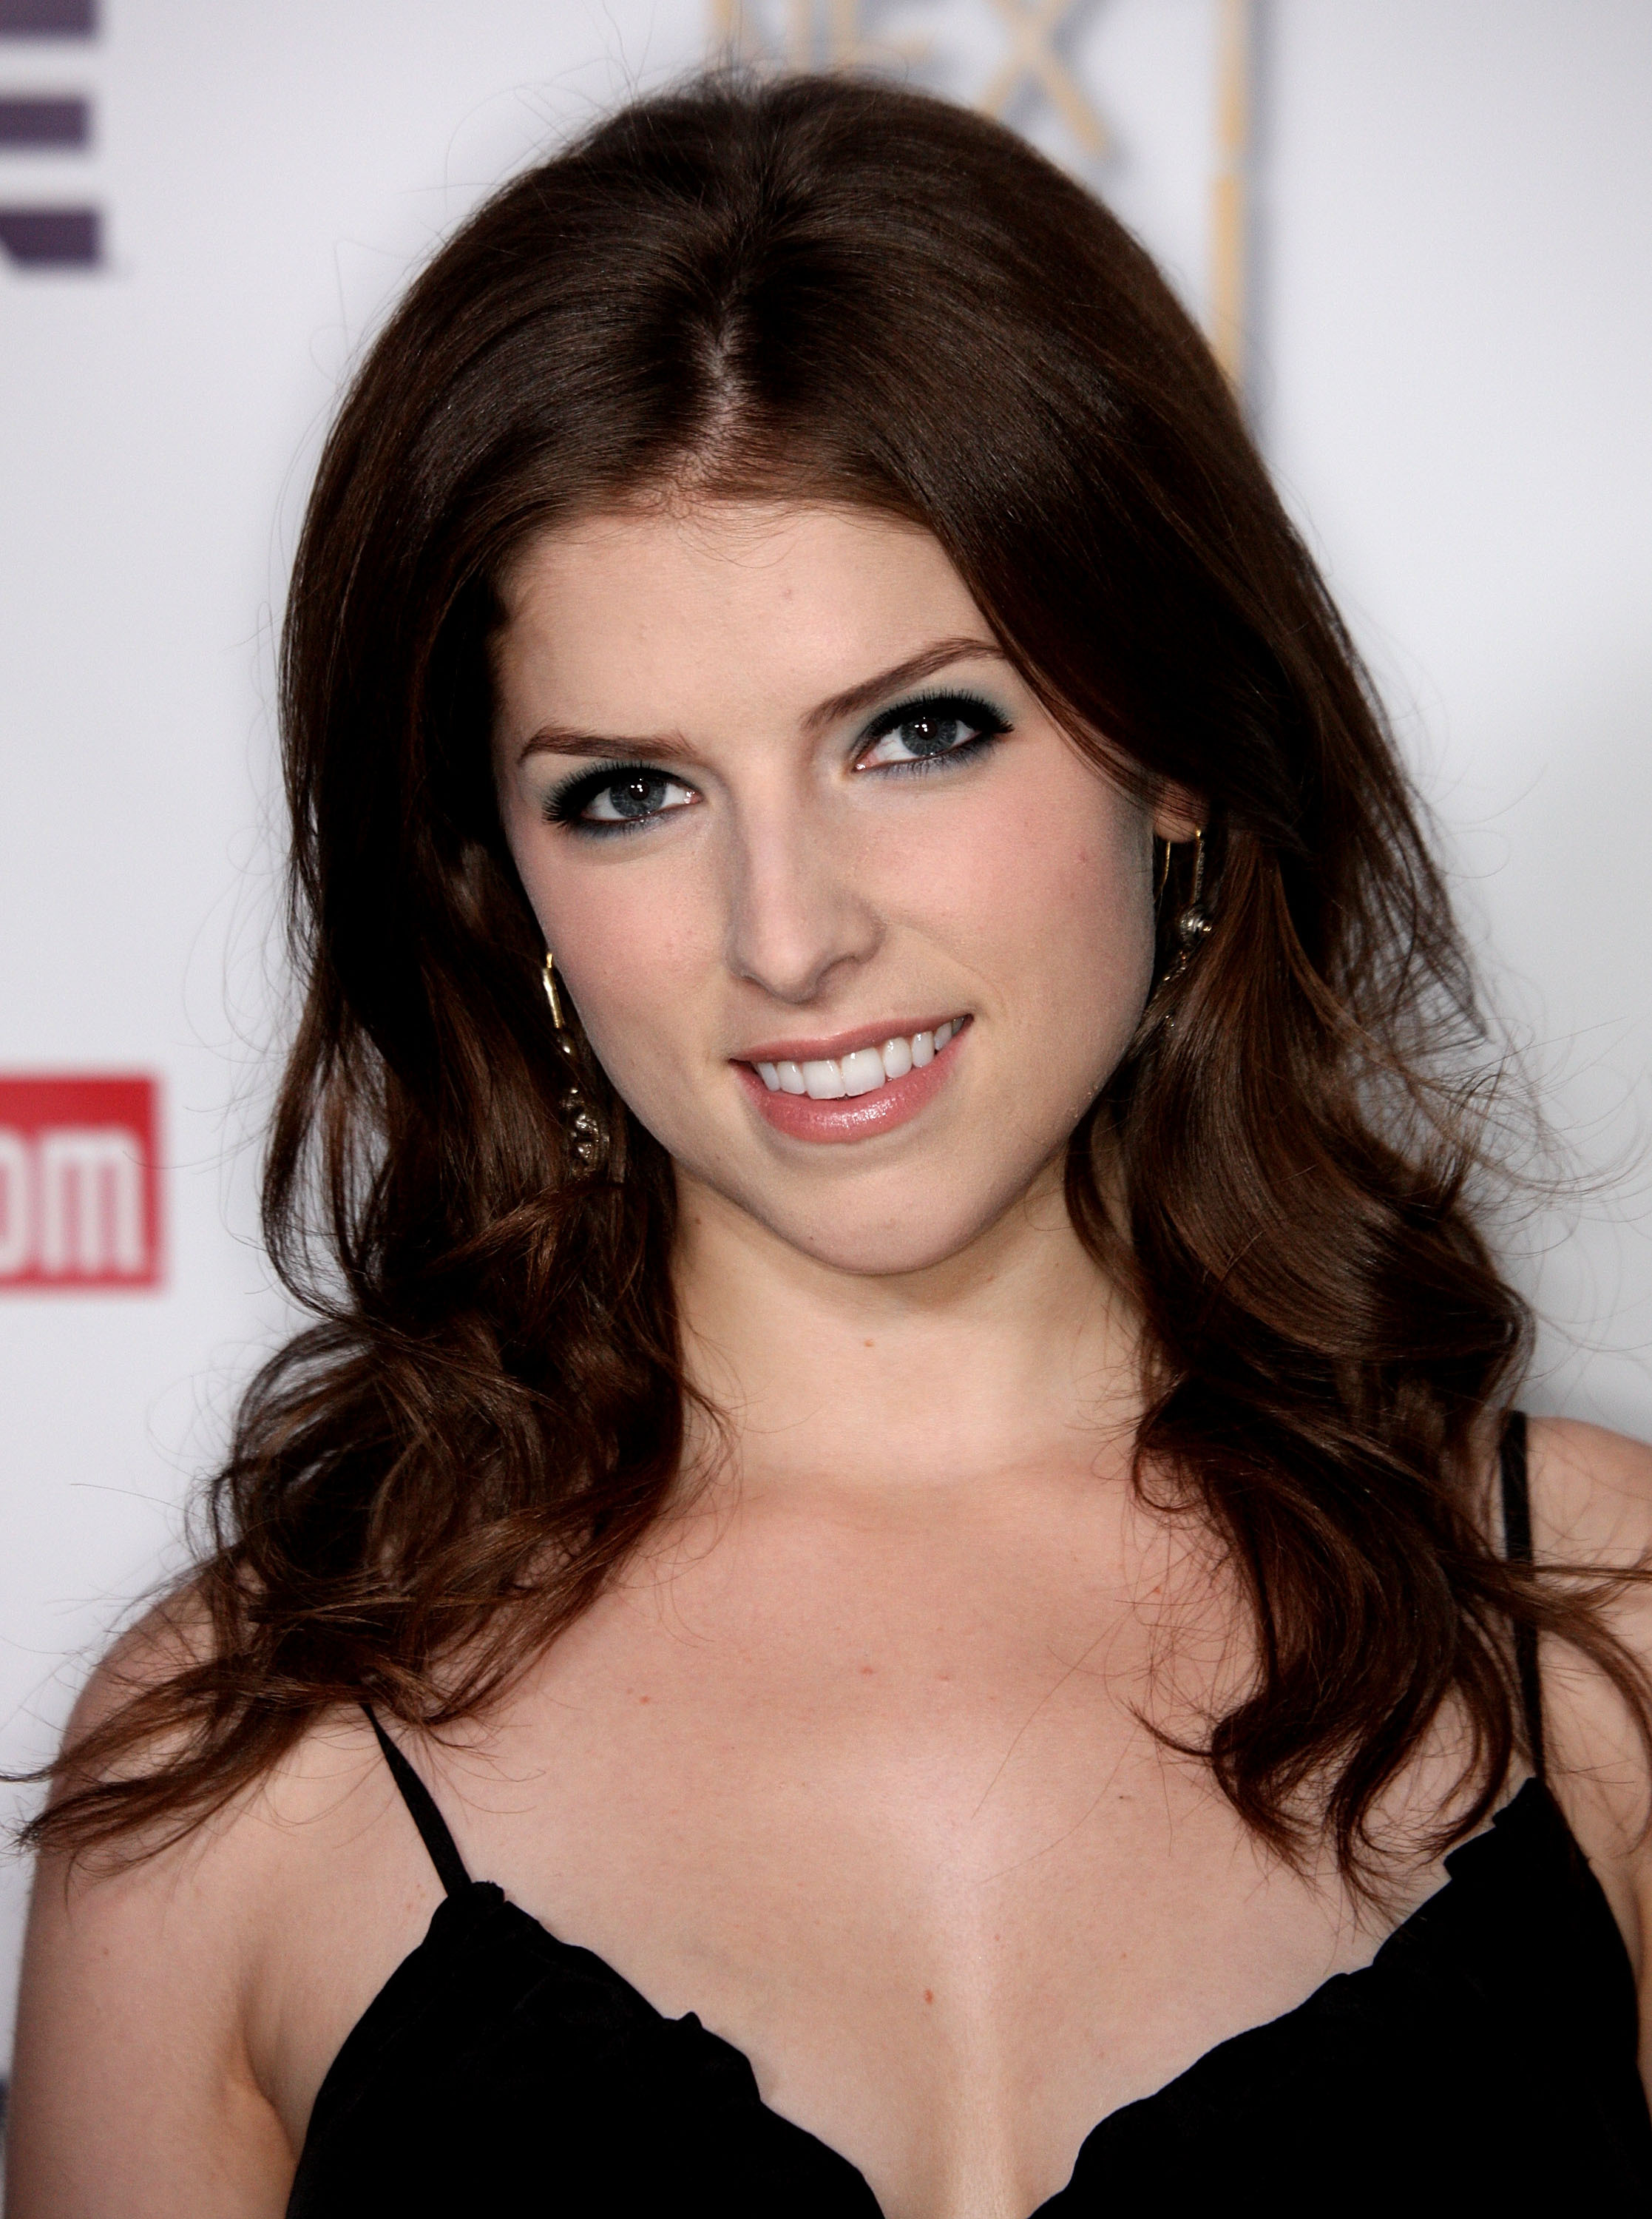 56 images about Anna Kendrick on We Heart It | See more about anna kendrick and pitch perfect